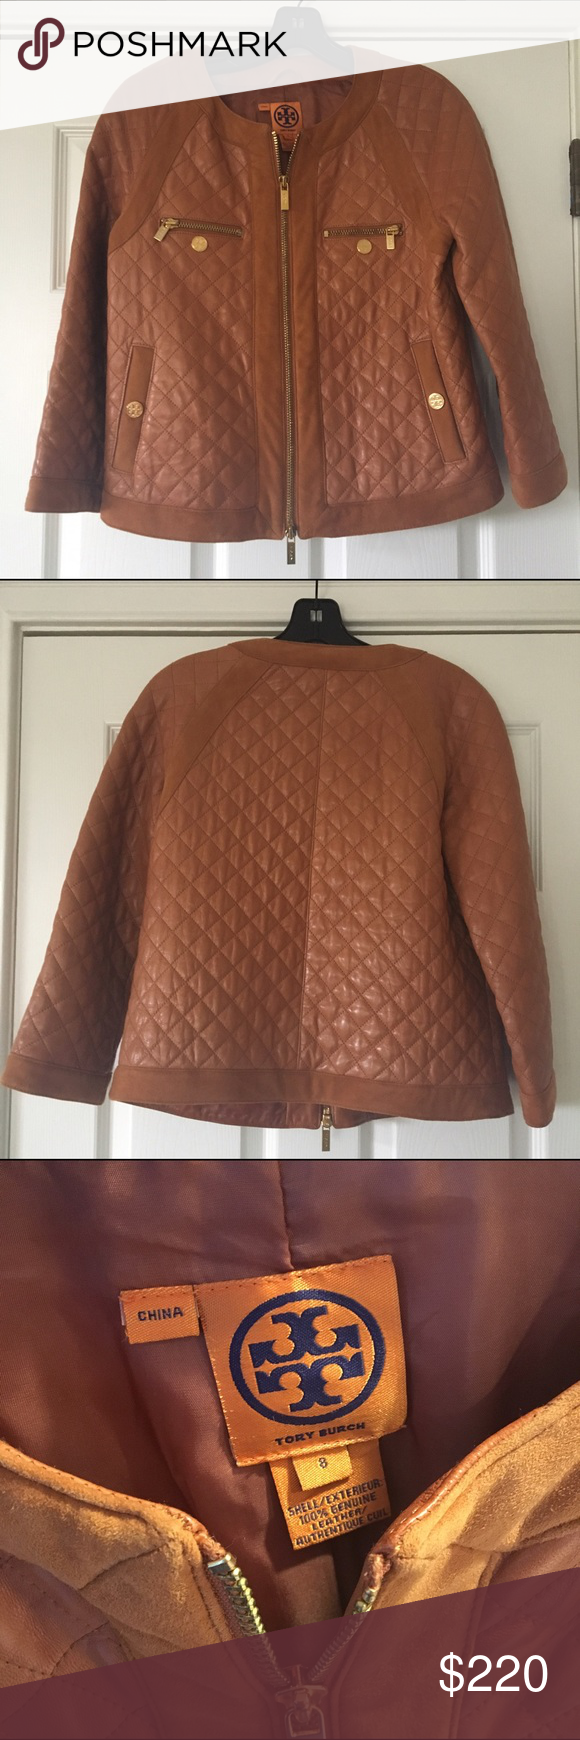 Tory Burch leather Cluny camel brown Jacket 8 Tory Burch Cluny jacket in excellent condition. Like new. Worn once. Gold hardware is a little tarnished on chest pocket but hardly noticeable. Size 8 Tory Burch Jackets & Coats